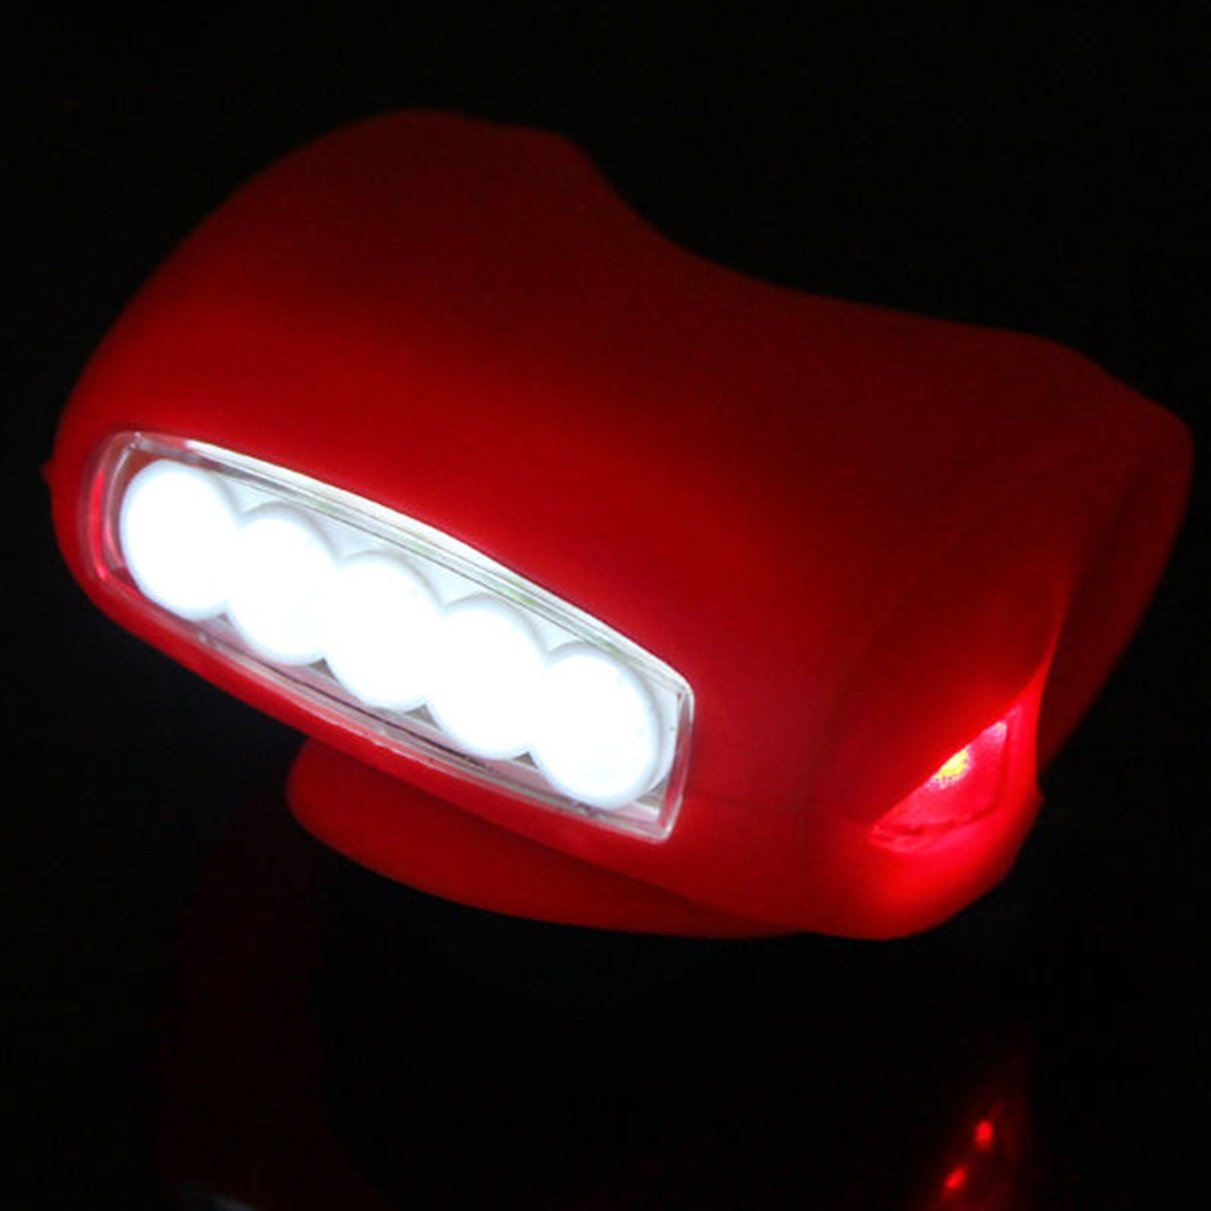 1 Pc Credible Unique 3 Mode 7x LED Flashlight Silicone Bike Lights Night Light Bicycle Cycling Head Front Rear Safety Headlight Coast Bright Waterproof Camping Holder LEDs Flashlights Torch Color Red